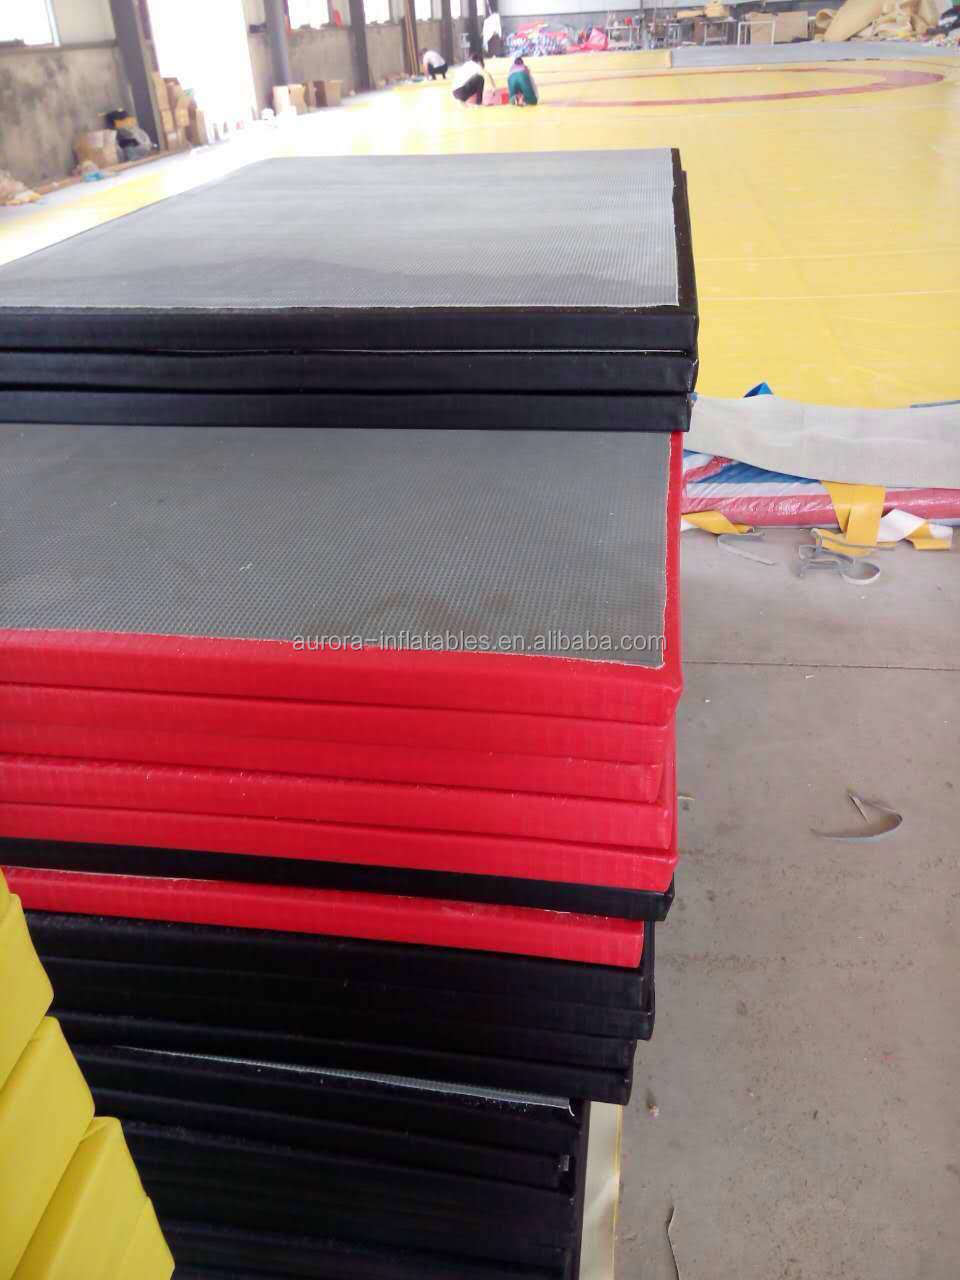 Customized 1mx2m Tatami Judo Used Mat With Factory Price